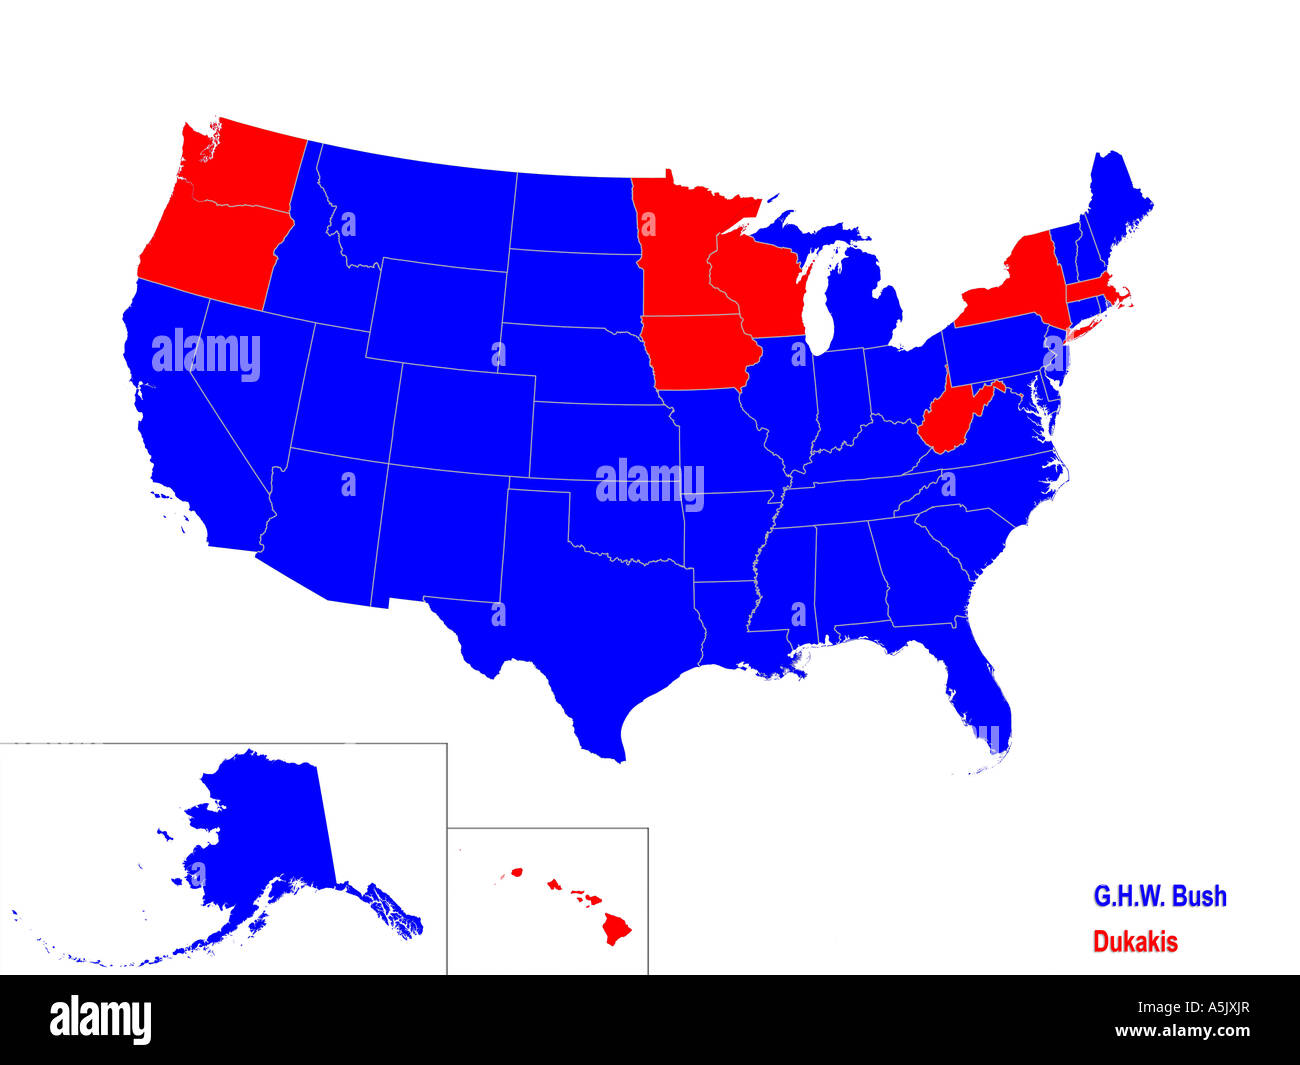 1988 United States presidential election